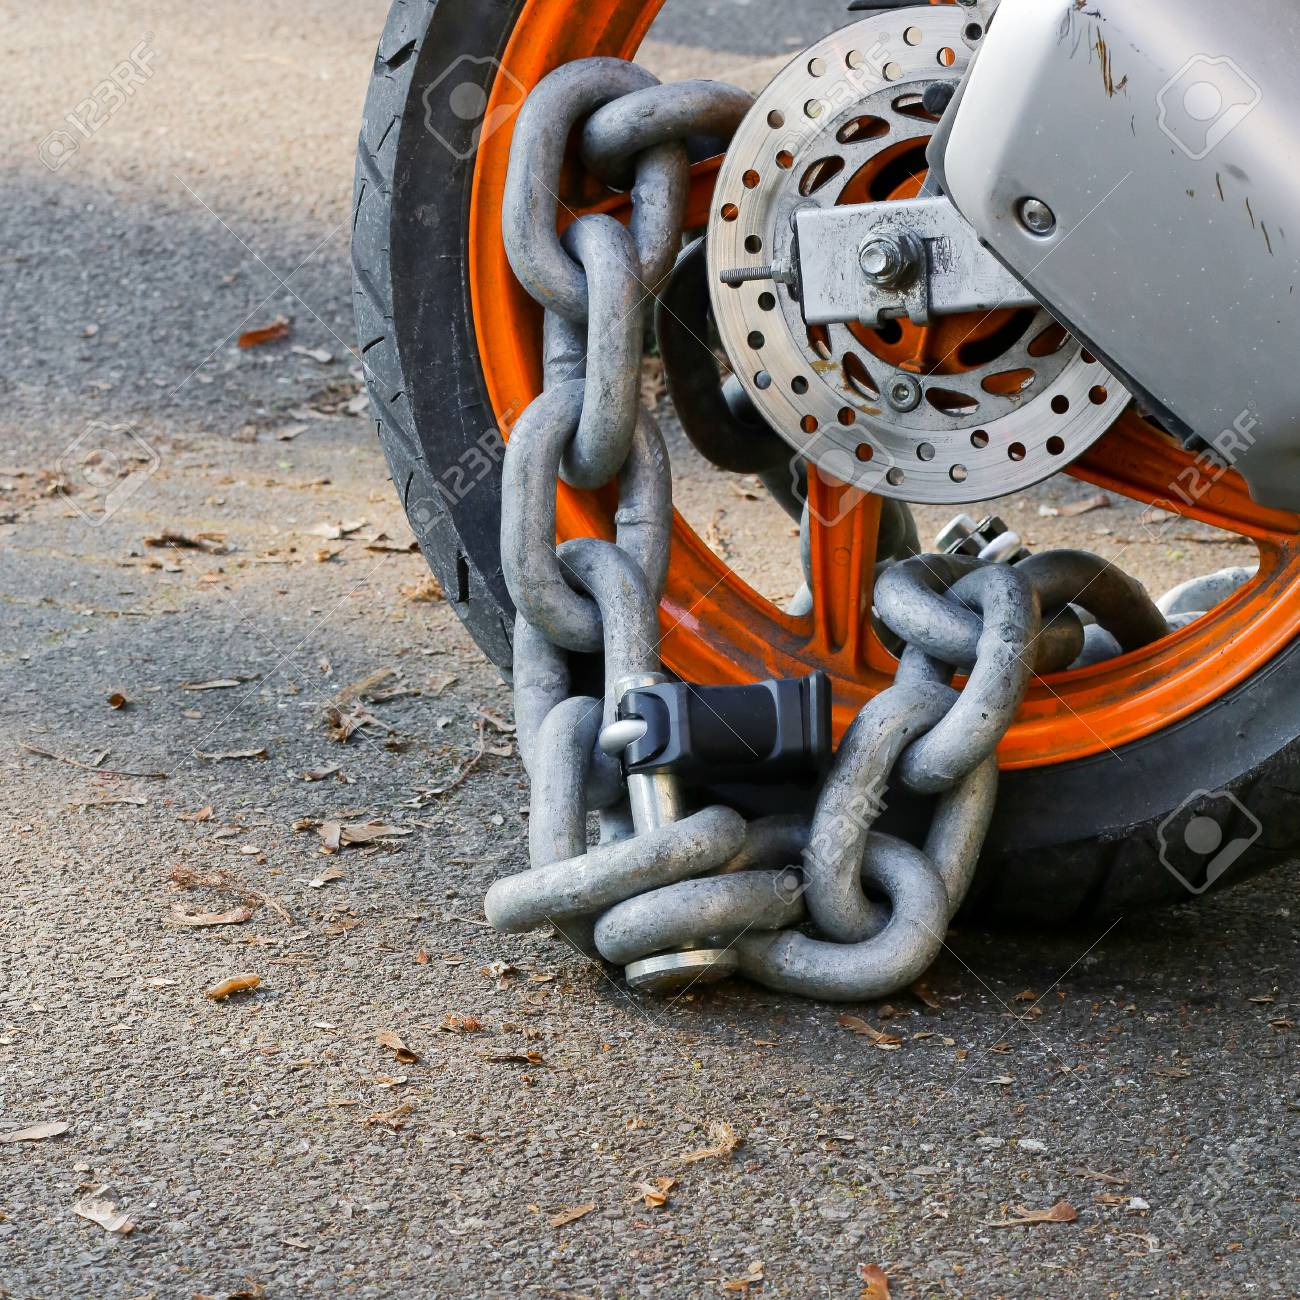 Motorcycle Anti-theft Chain With Padlock Security Lock On Rear.. Stock  Photo, Picture And Royalty Free Image. Image 70818251.